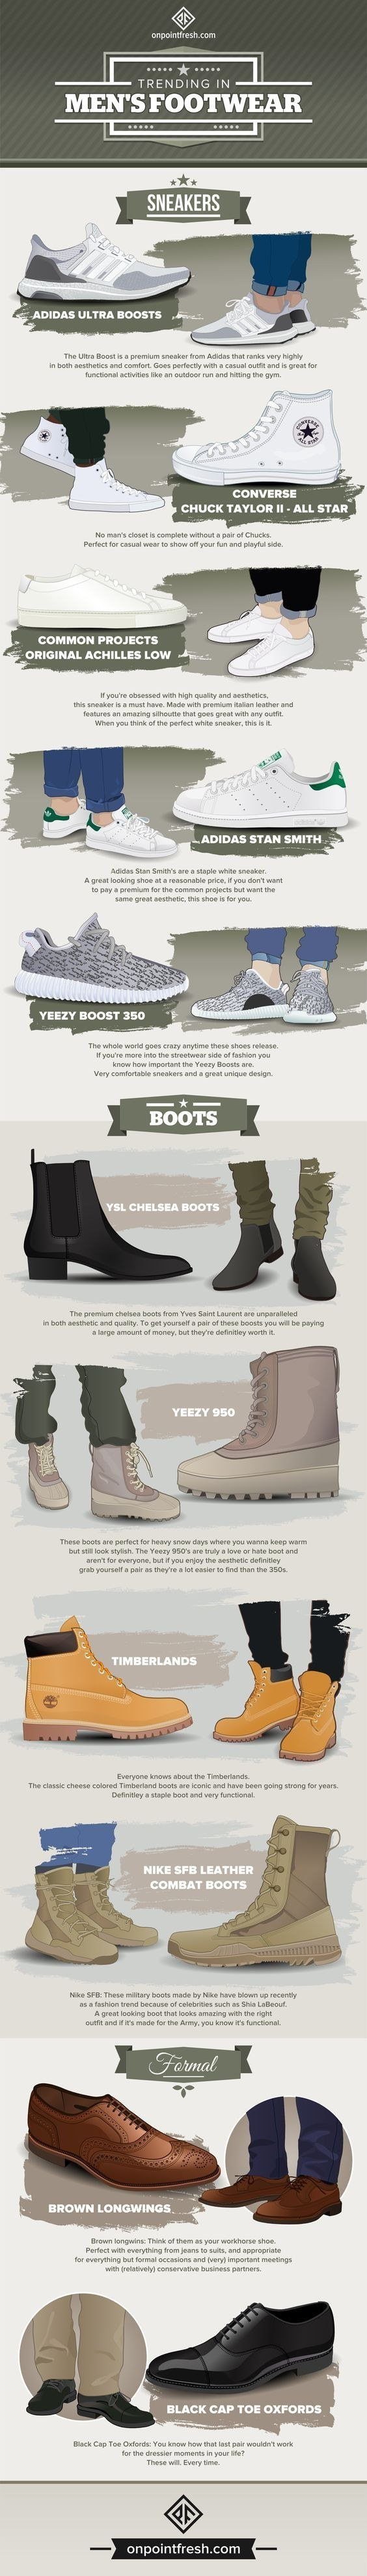 Check out this breakdown of current trends in footwear: